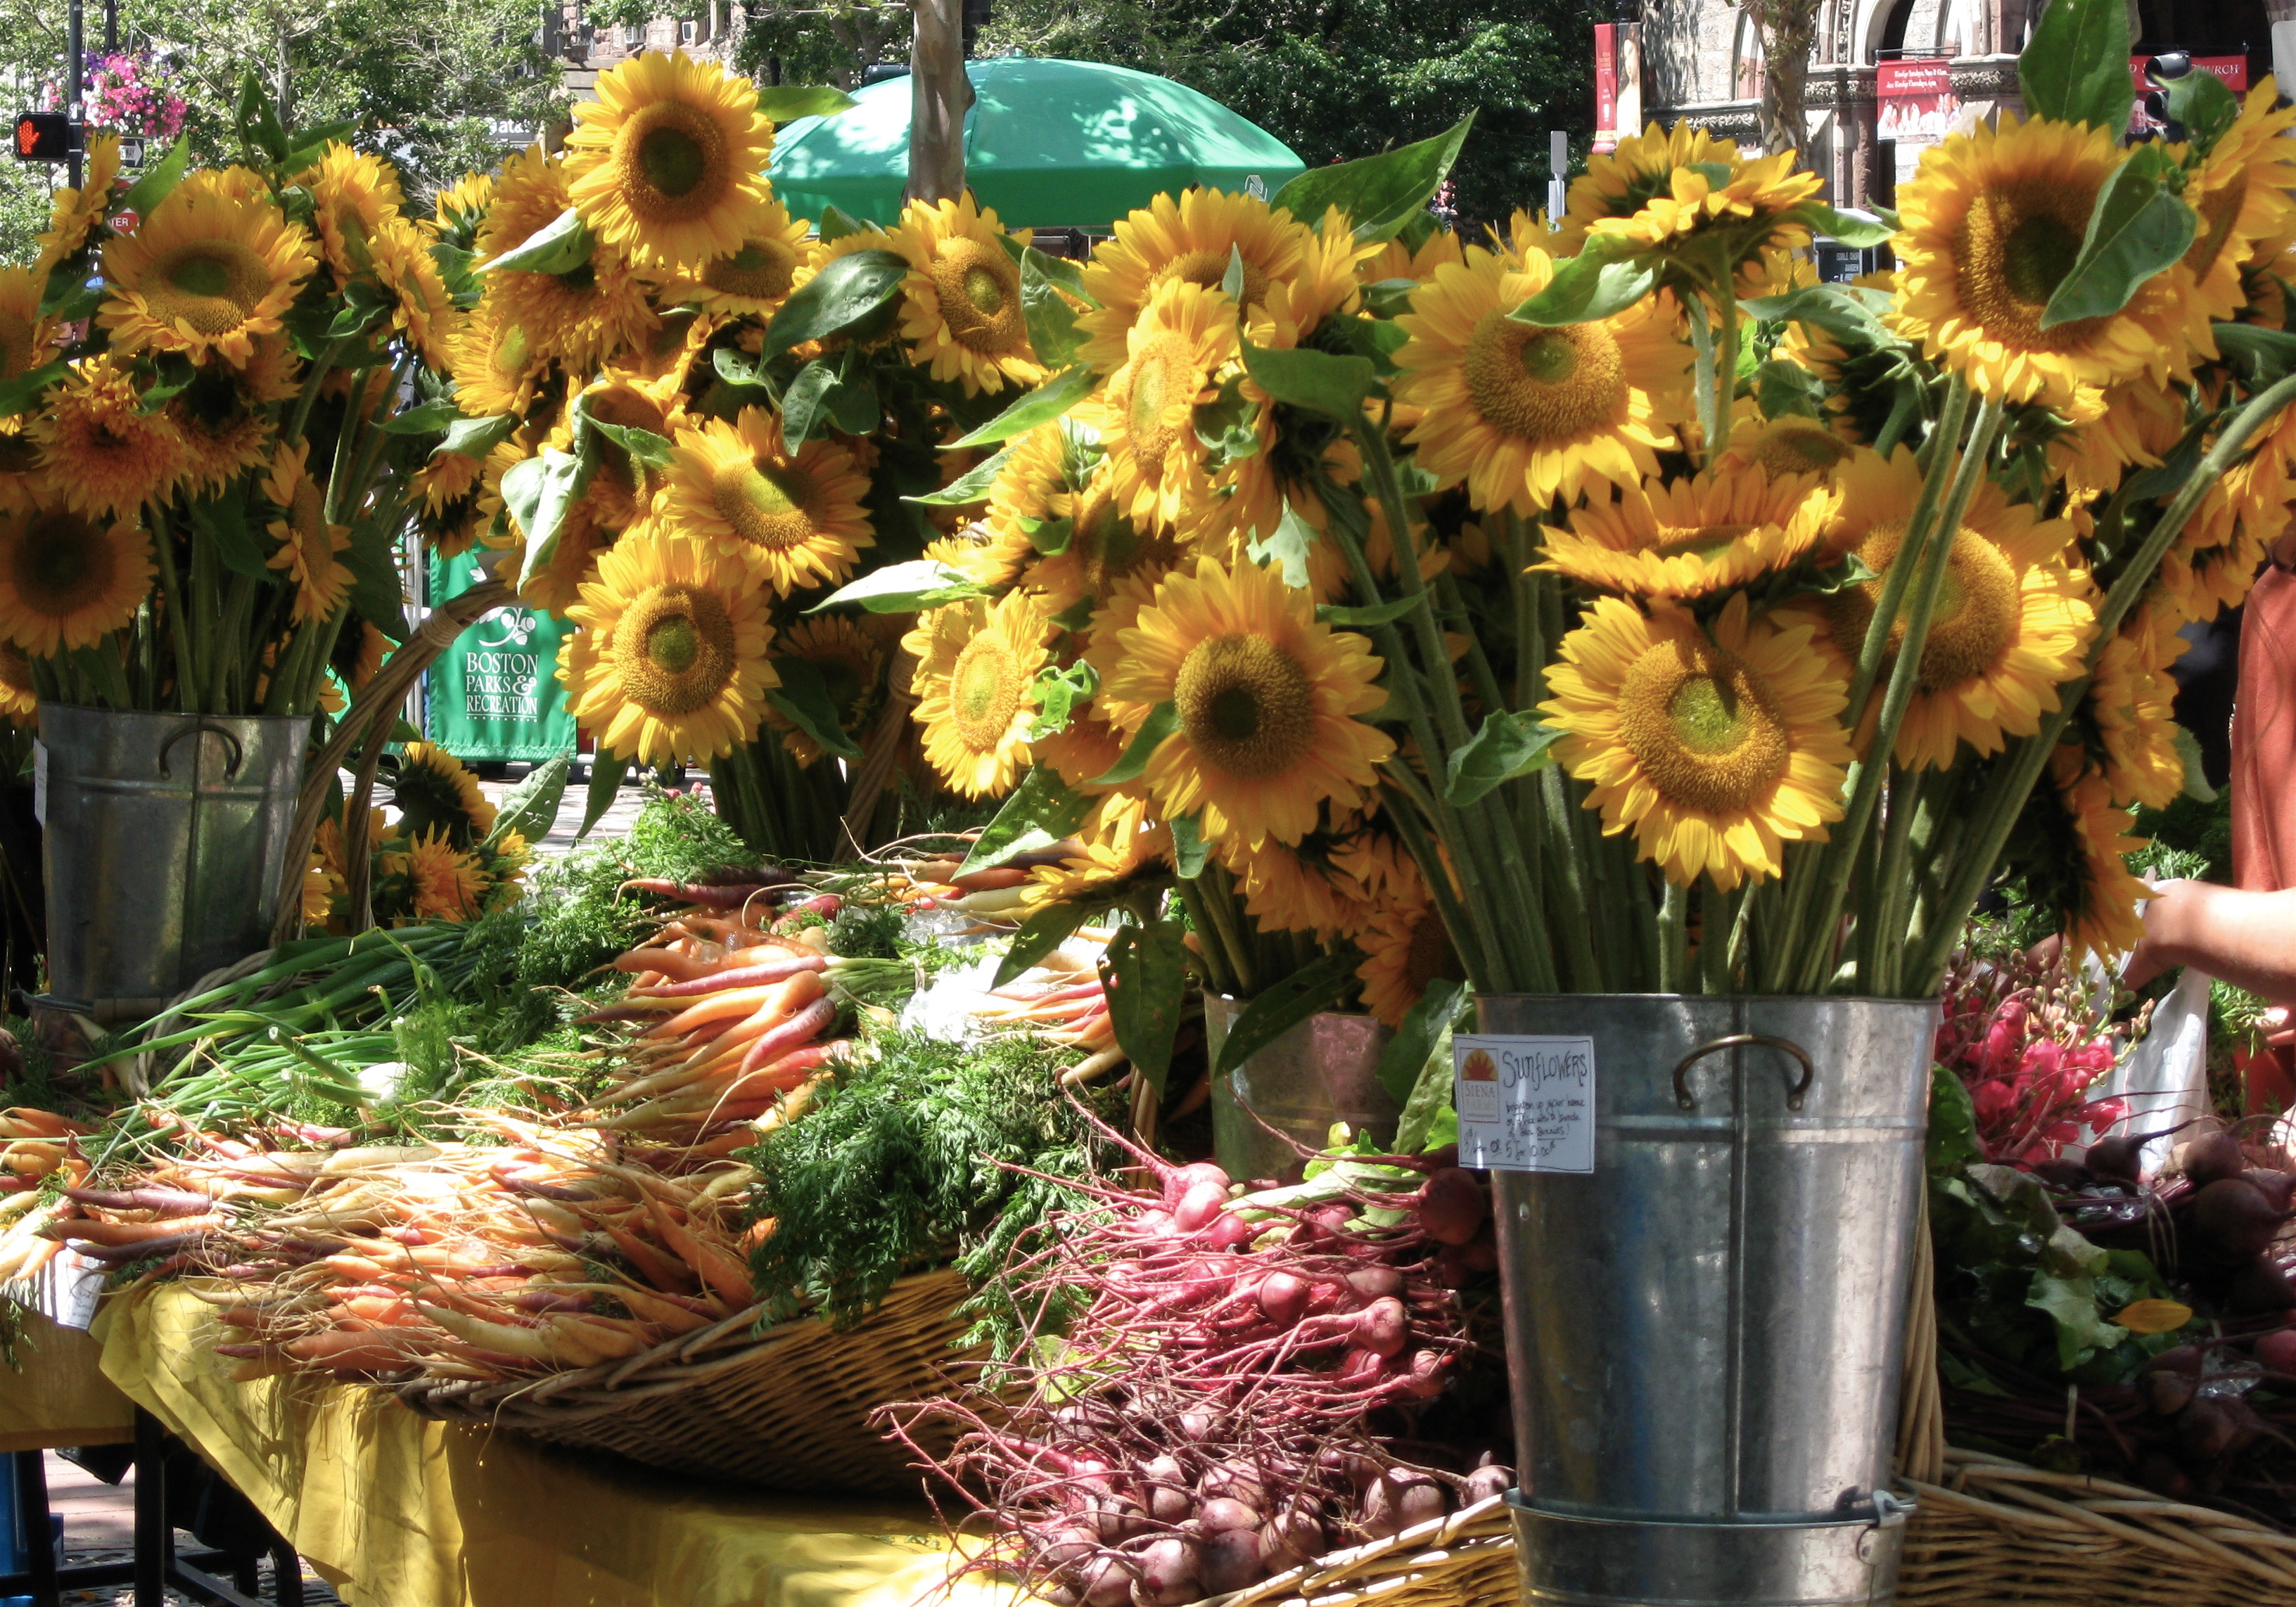 Sunflowers and produce